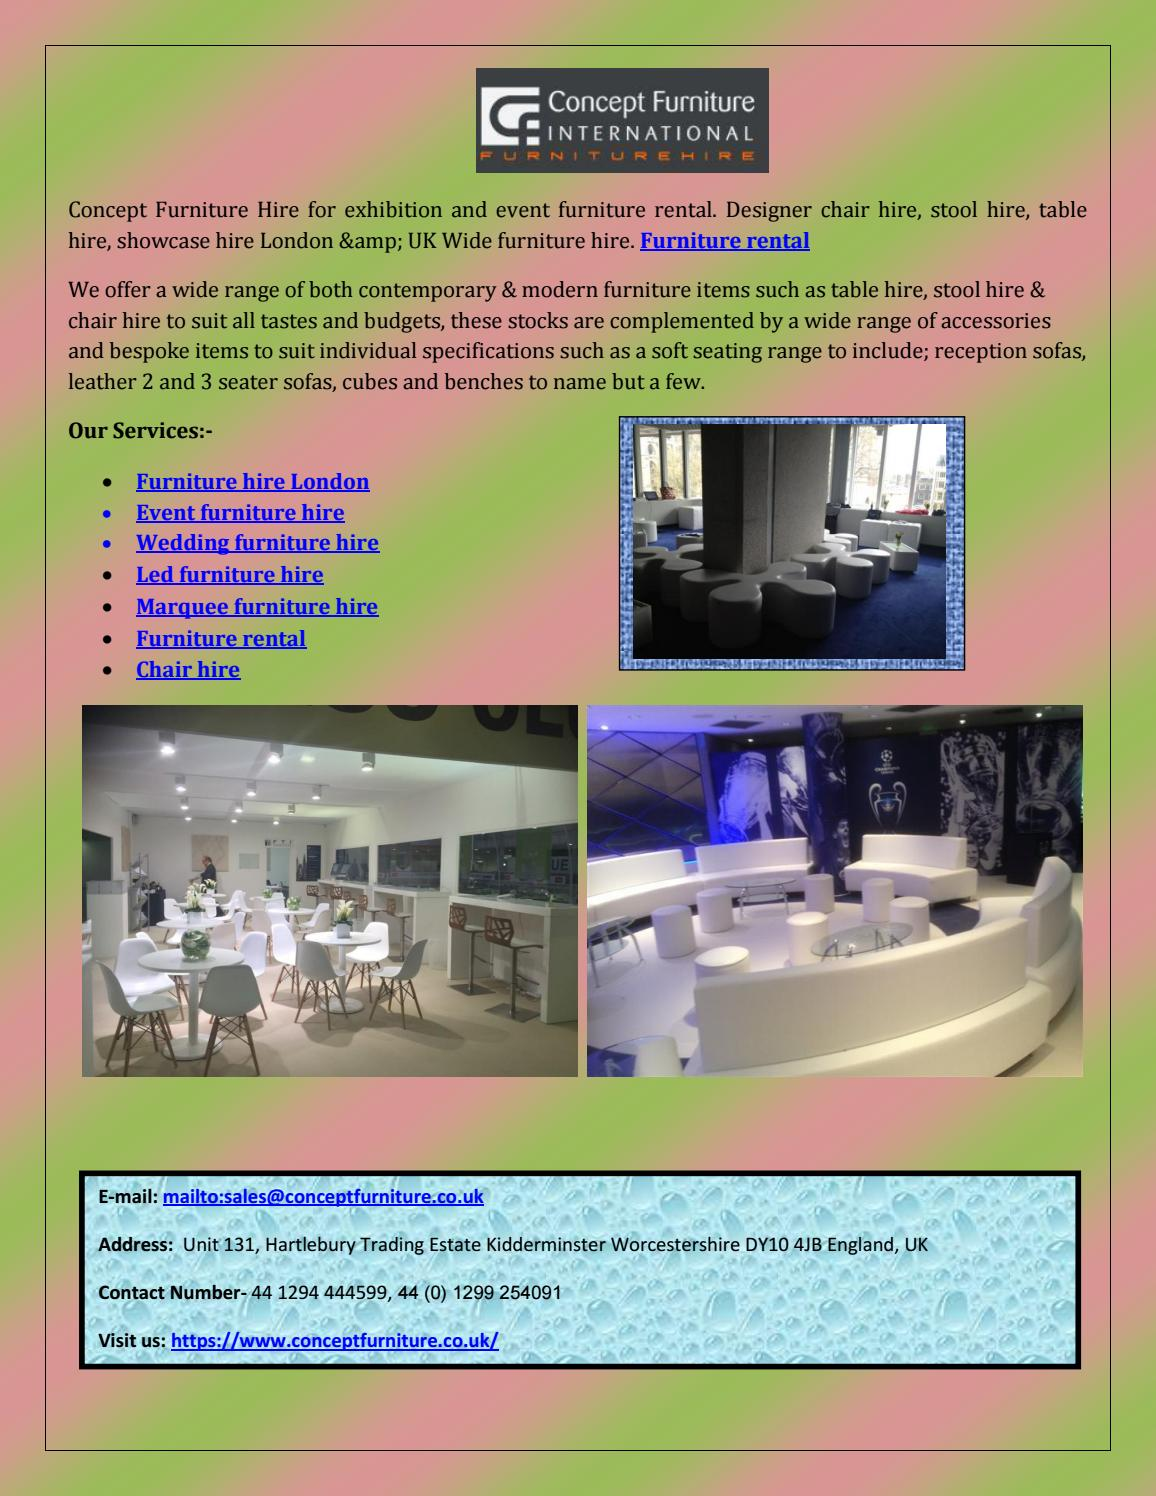 Concept furniture hire exhconcept furniture hire exhibitiibition and event furniture hire london